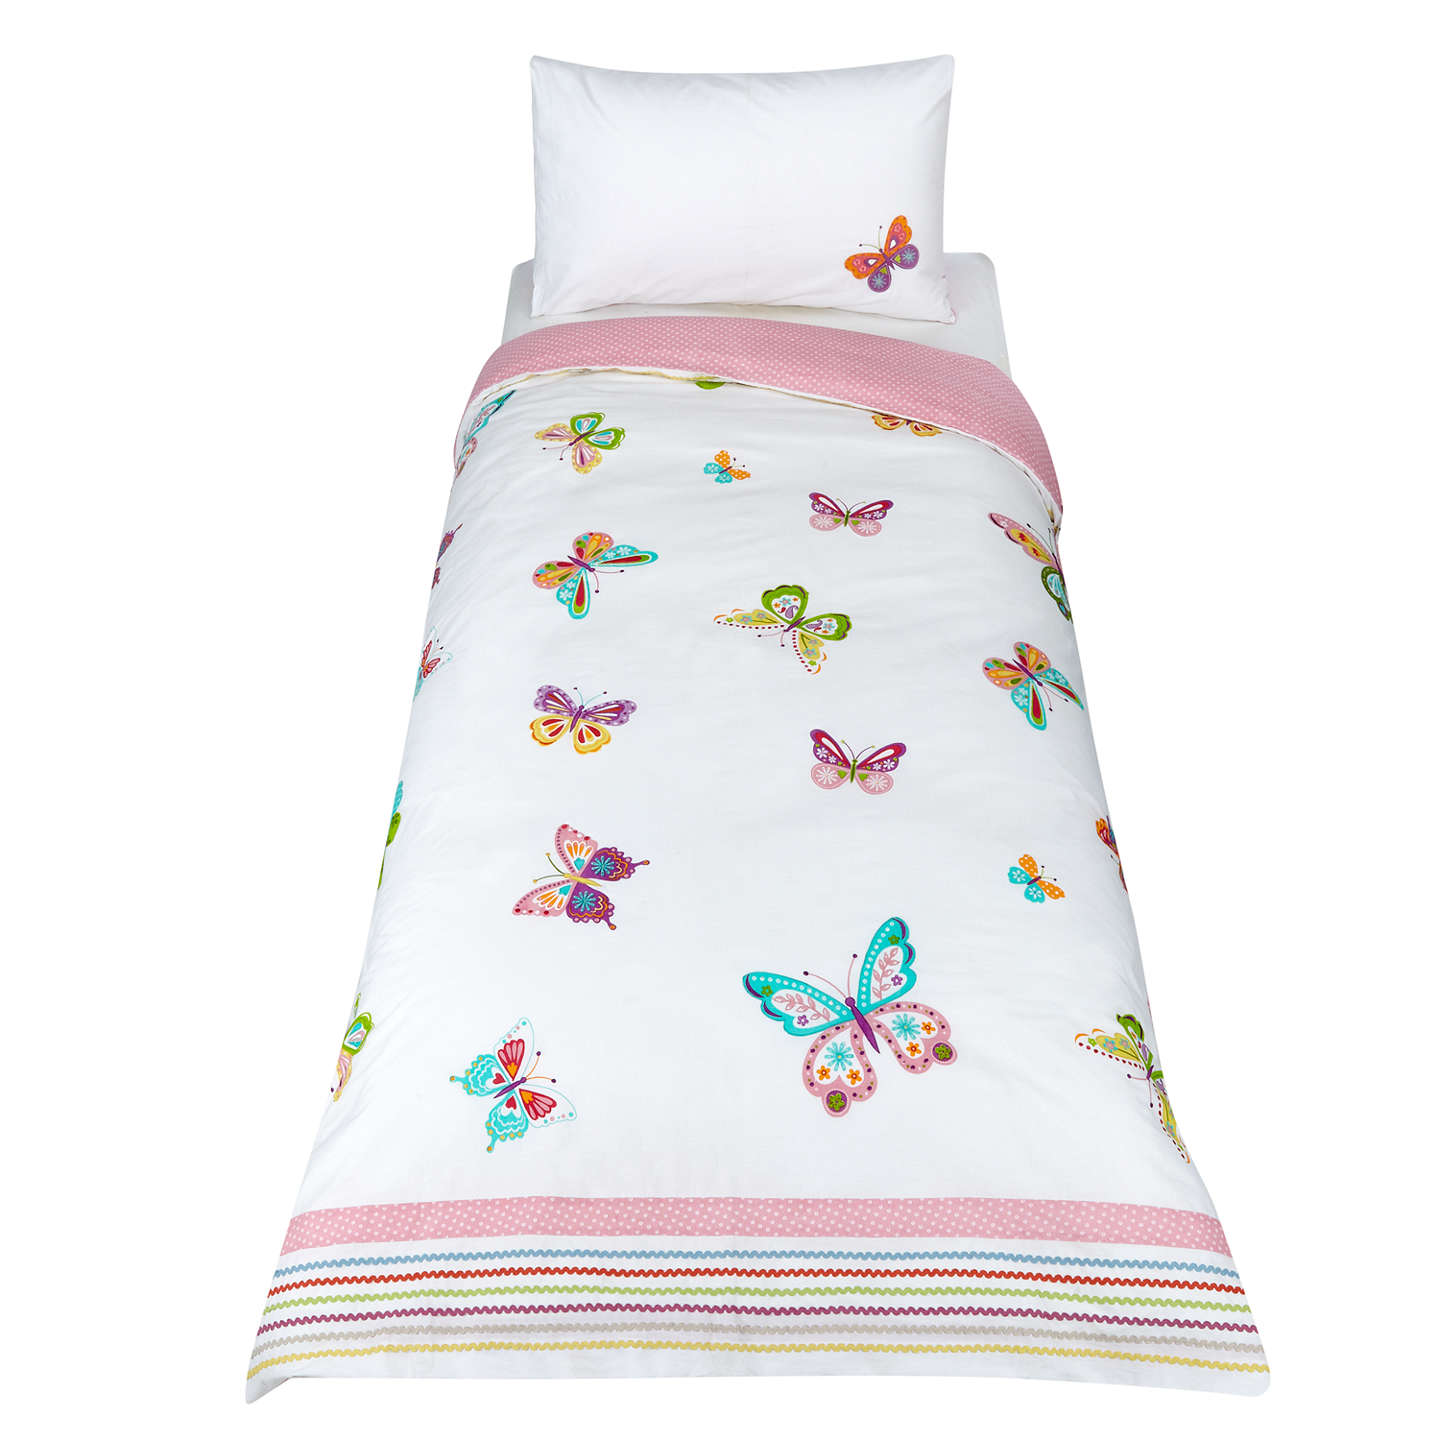 Buylittle home at John Lewis Butterfly Embroidered Duvet Cover and Pillowcase Set, Single Online at johnlewis.com